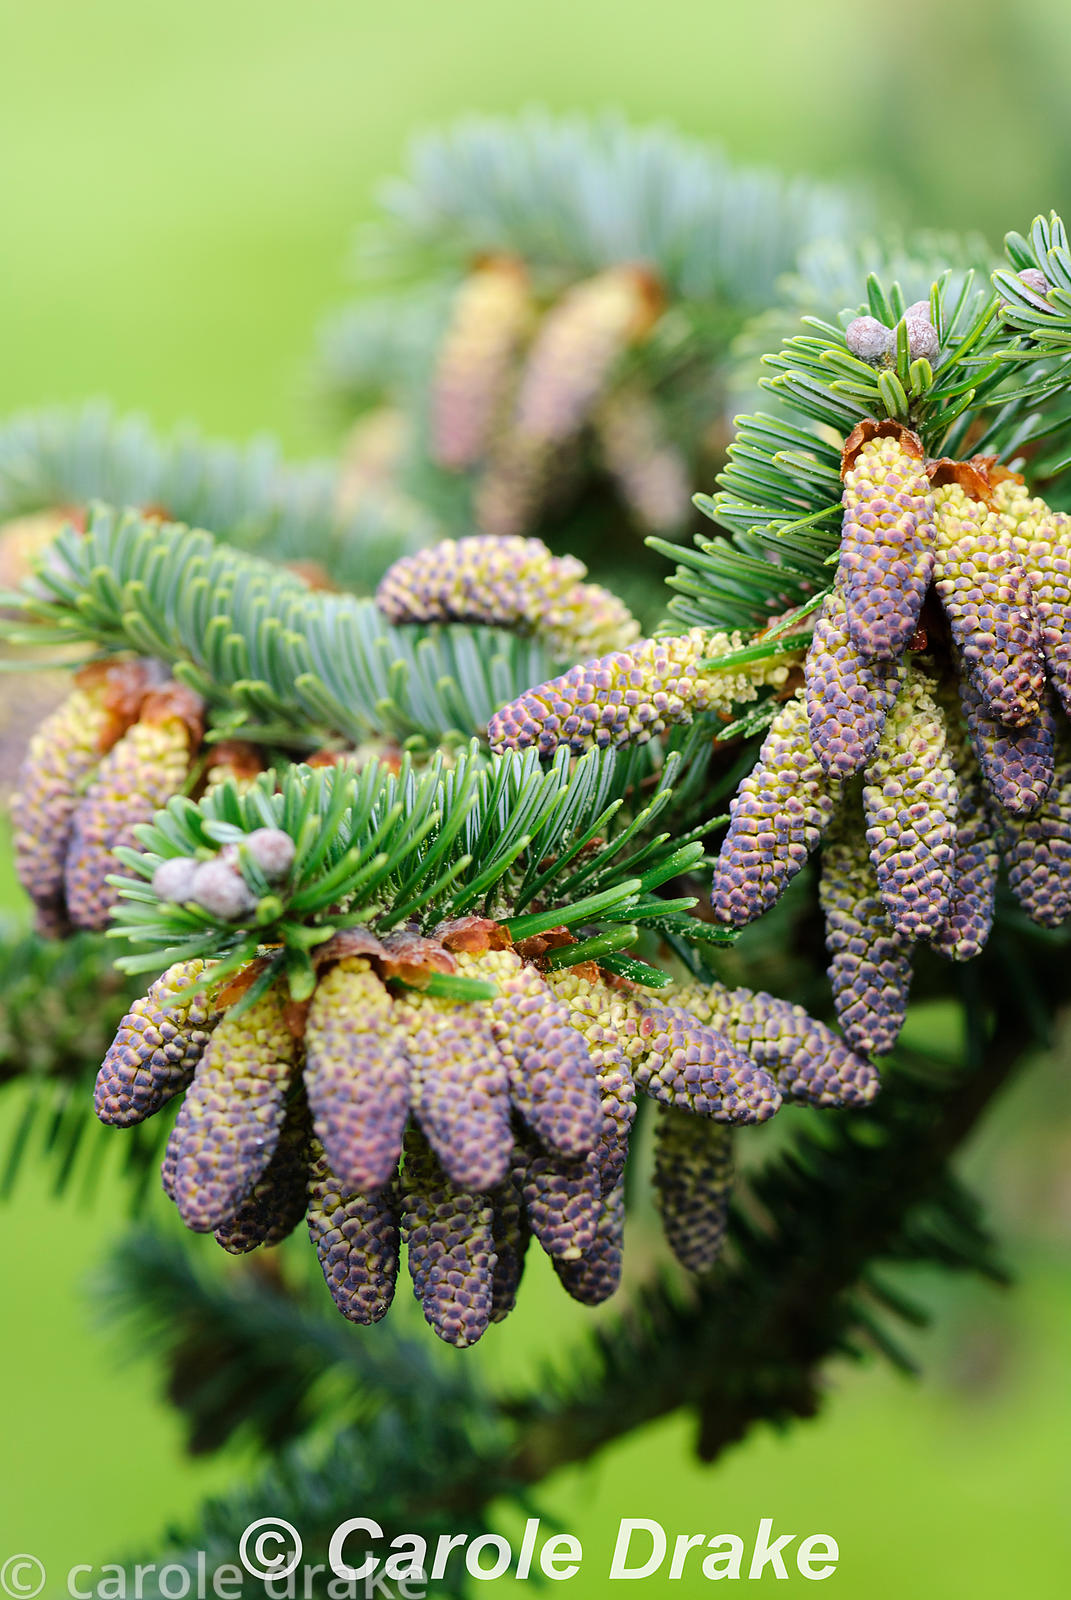 Abies forrestii. Sir Harold Hillier Gardens/Hampshire County Council, Romsey, Hants, UK